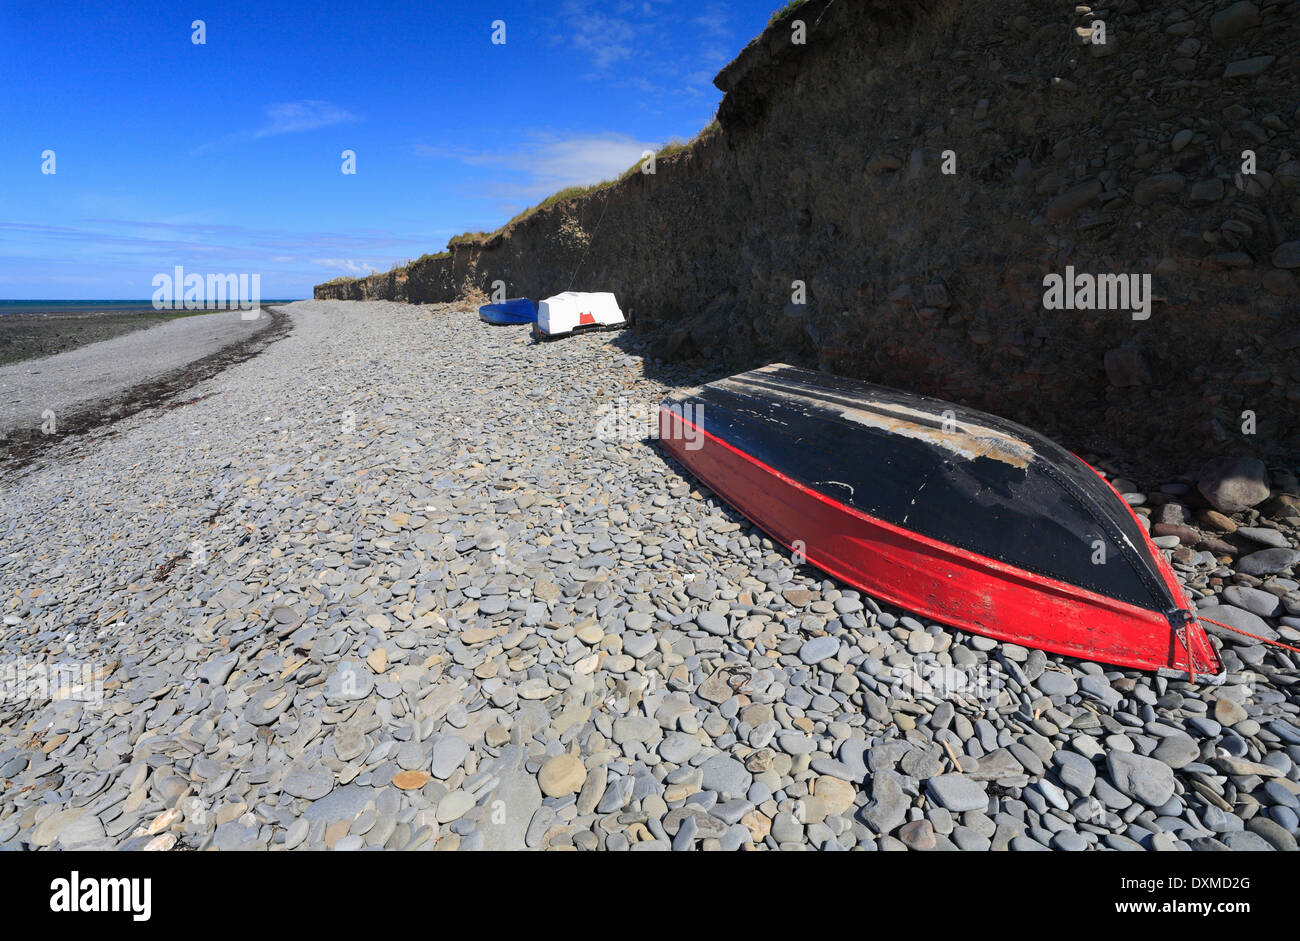 Boats under a small cliff on Llanon beach, Ceredigion, Wales. - Stock Image